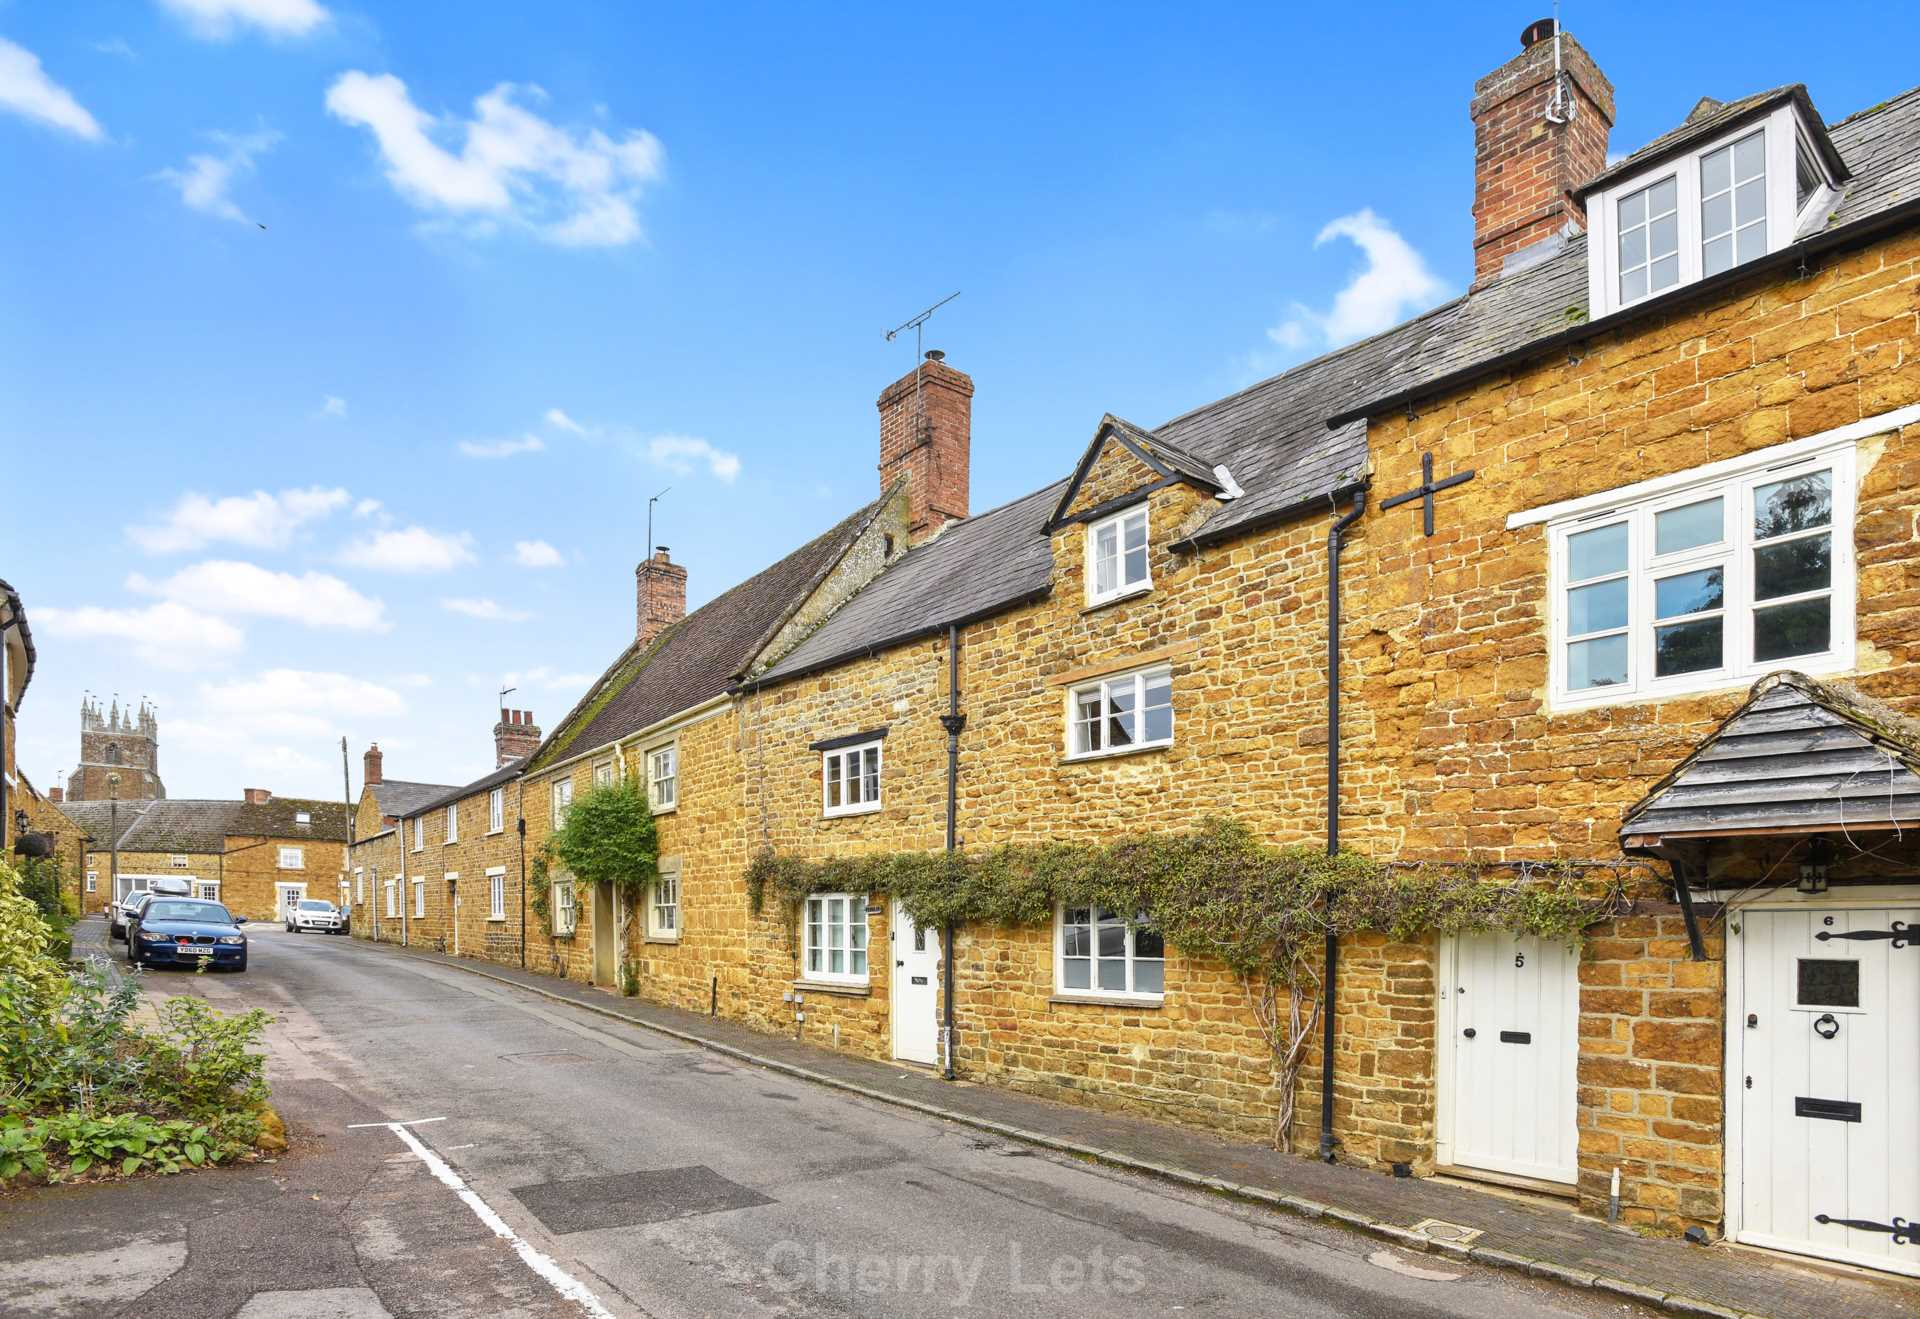 2 bed cottage to rent in Philcote Street, Deddington, Banbury  - Property Image 11